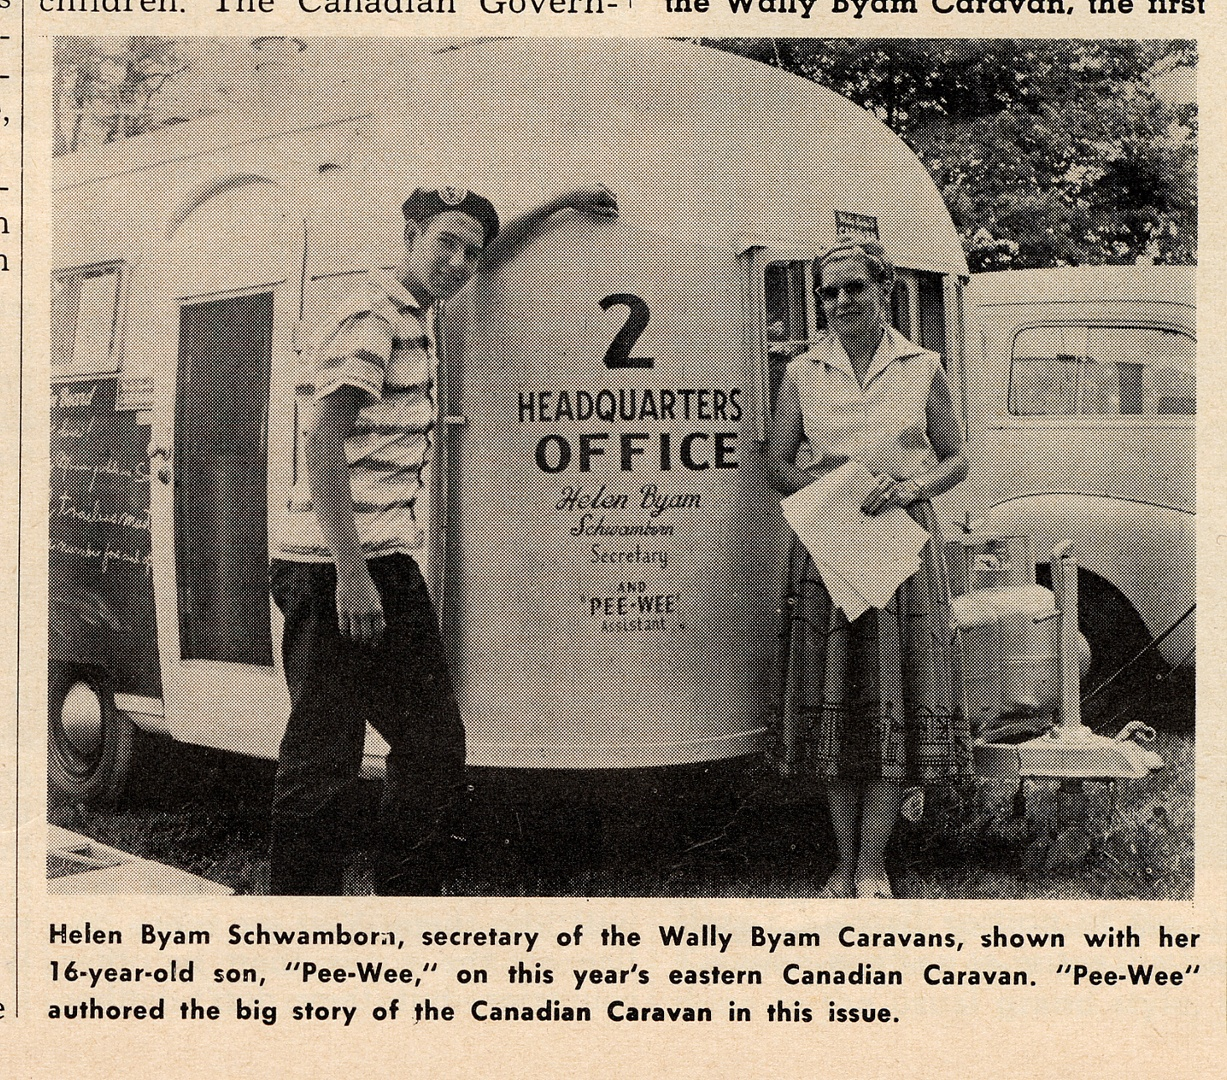 Dale and Helen Oct 19 55 Caravanner